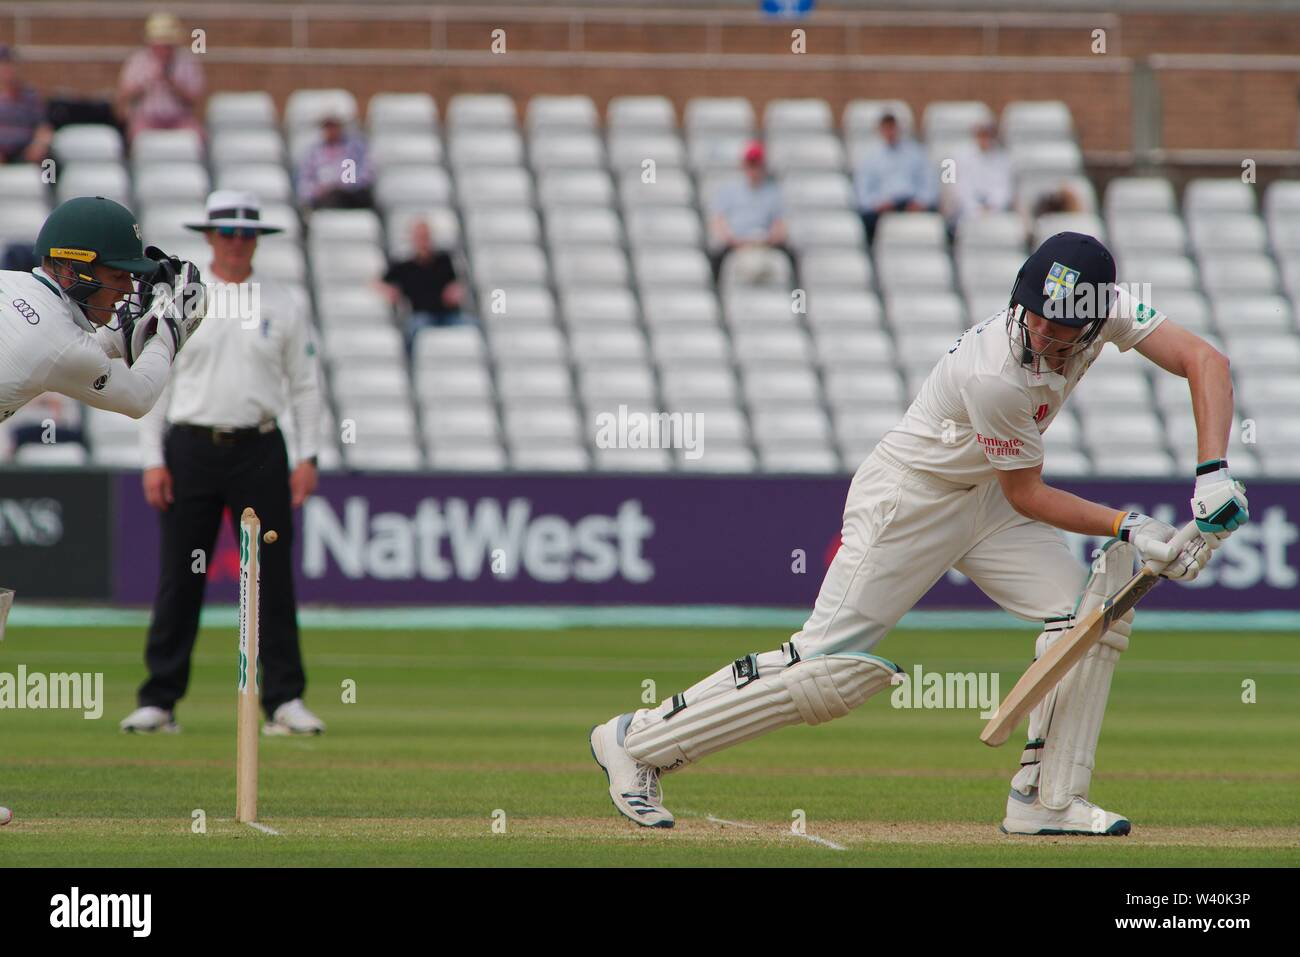 Chester le Street, England, 15 July 2019. Ben Cox, Worcestershire wicket keeper, attempts to stump Durham batsman Cameron Bancroft during their Specsavers County Championship match between Durham and Worcestershire at the Emirates Riverside, Chester le Street. - Stock Image